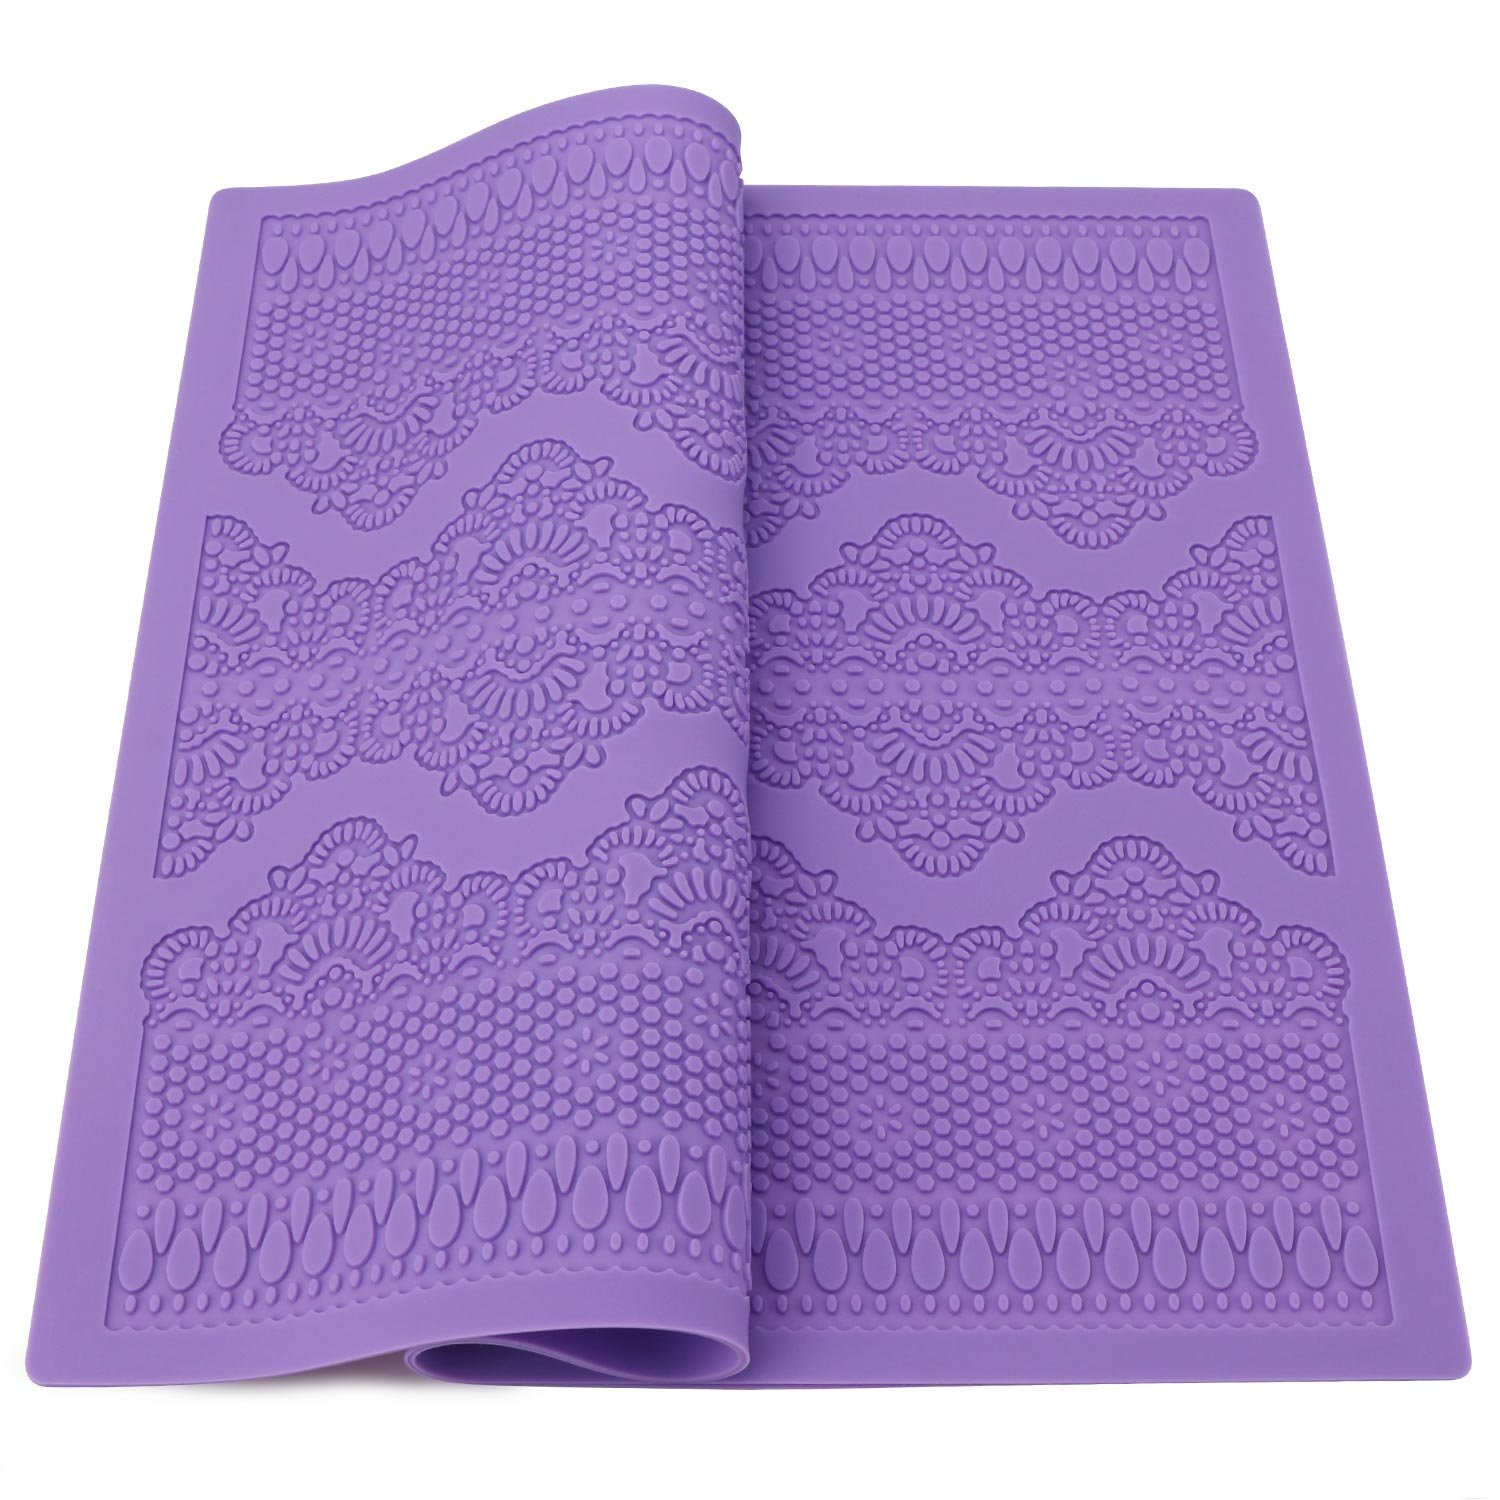 Cake Decration Mat, Beasea Flower Pattern Silicone Mold Fondant Cake Cutter Molds Sugarcraft Icing Decorating Flower Lace Modelling Tools Purple